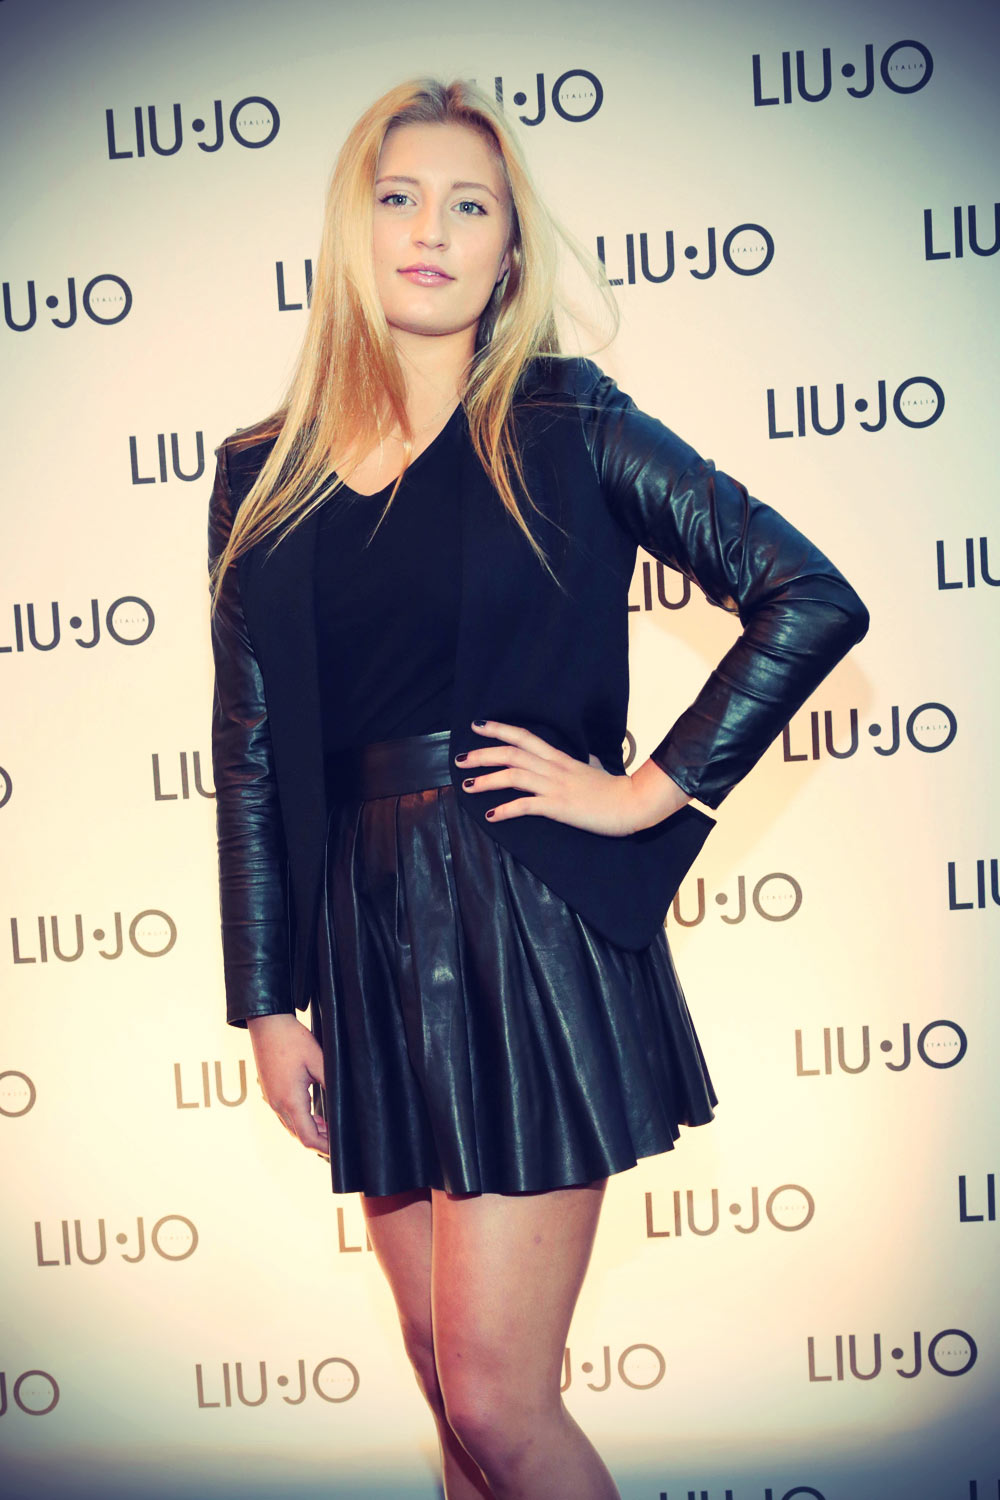 Luna Schweiger Liu Jo Store Opening Leather Celebrities